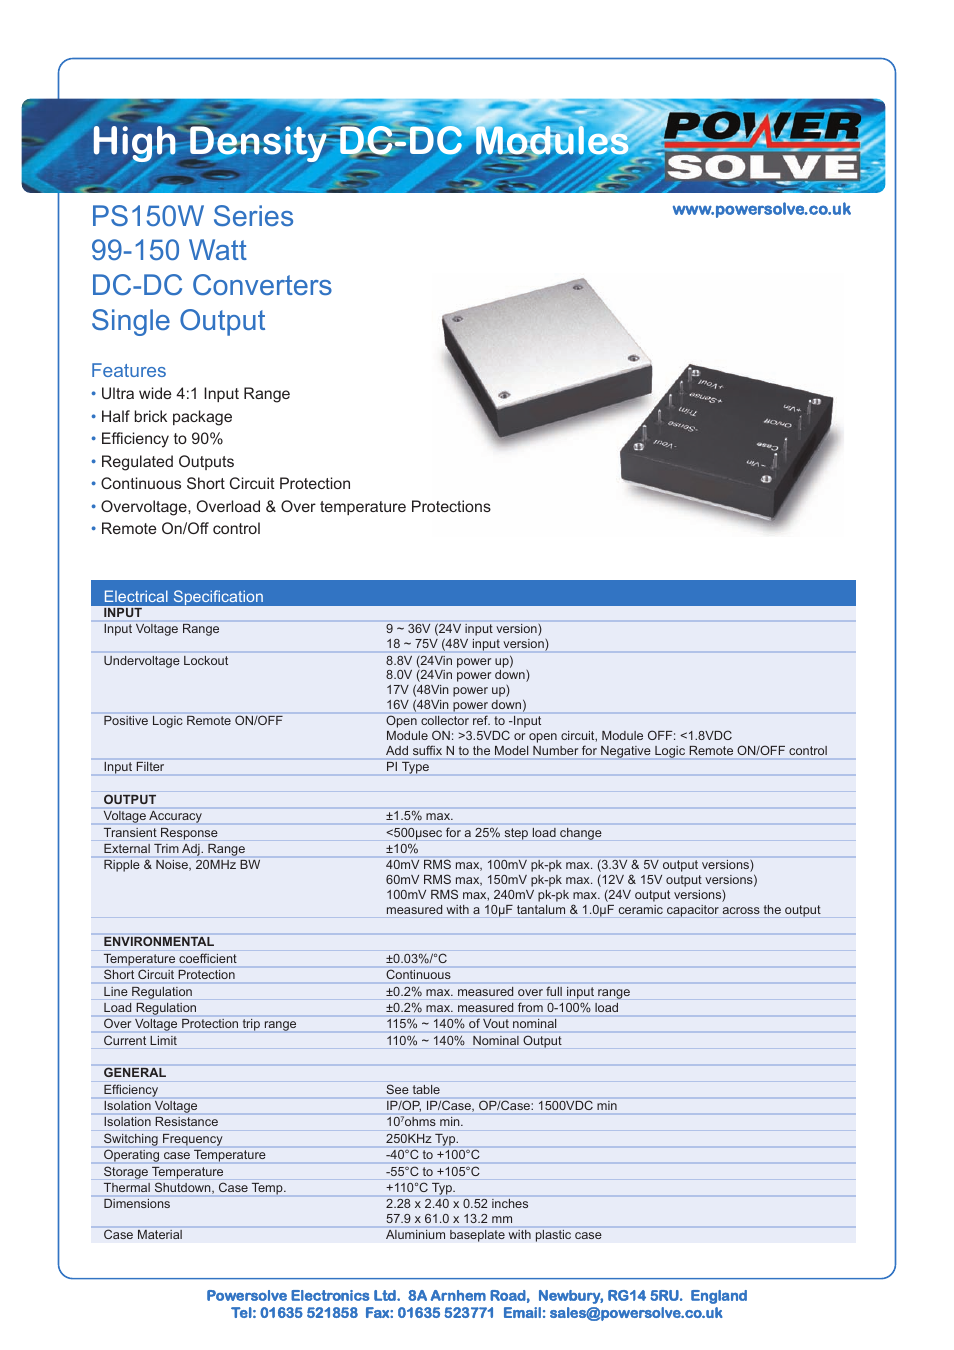 Powersolve Ps150w Series User Manual 3 Pages Logic Overvoltage Protection